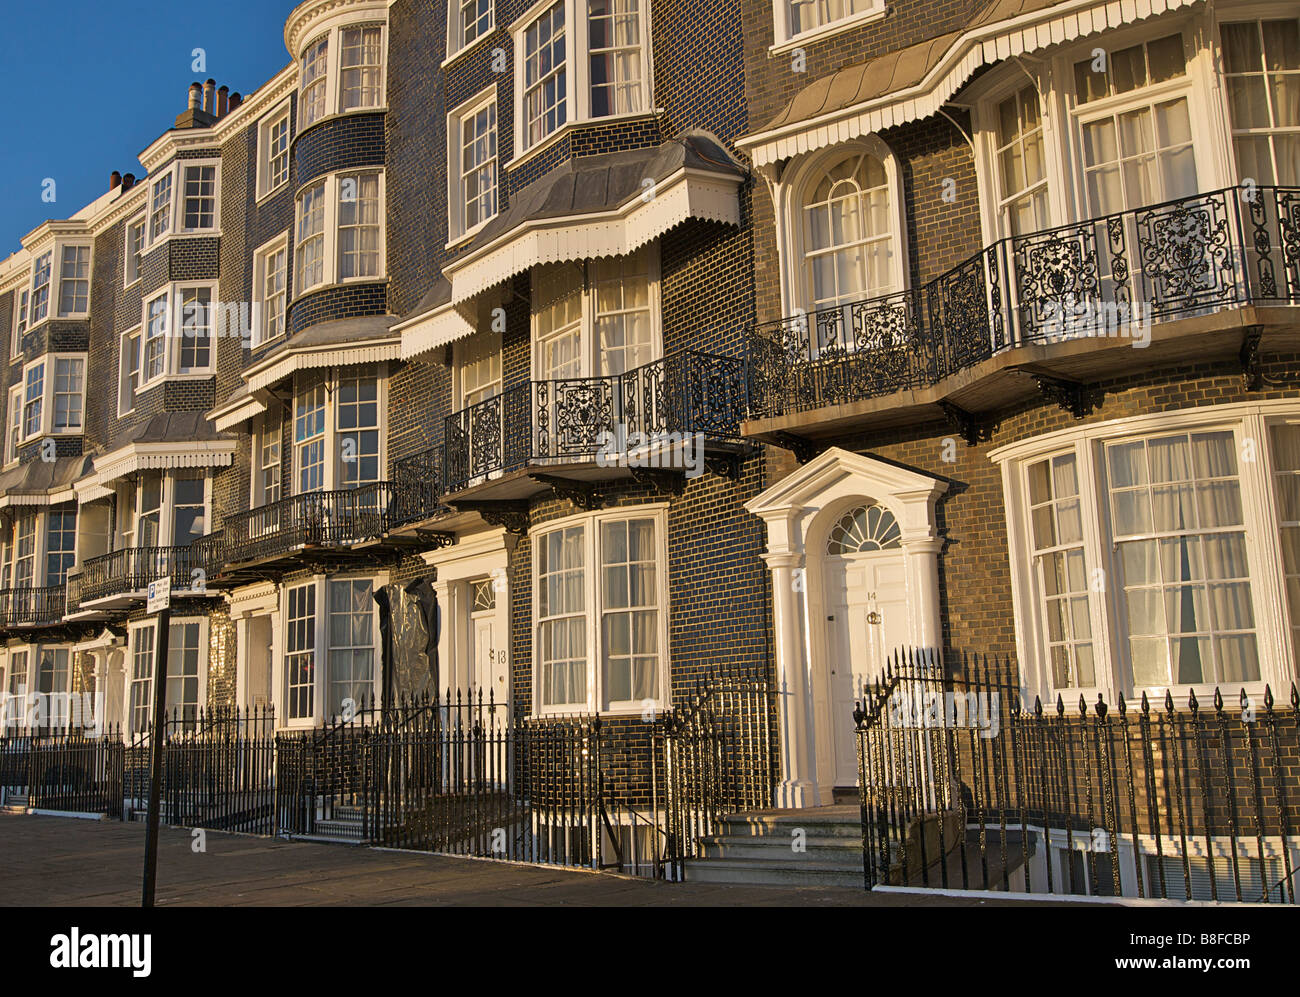 Royal Crescent, Brighton. Grade I listed Regency architecture. A rare example of mathematical tiling. England - Stock Image